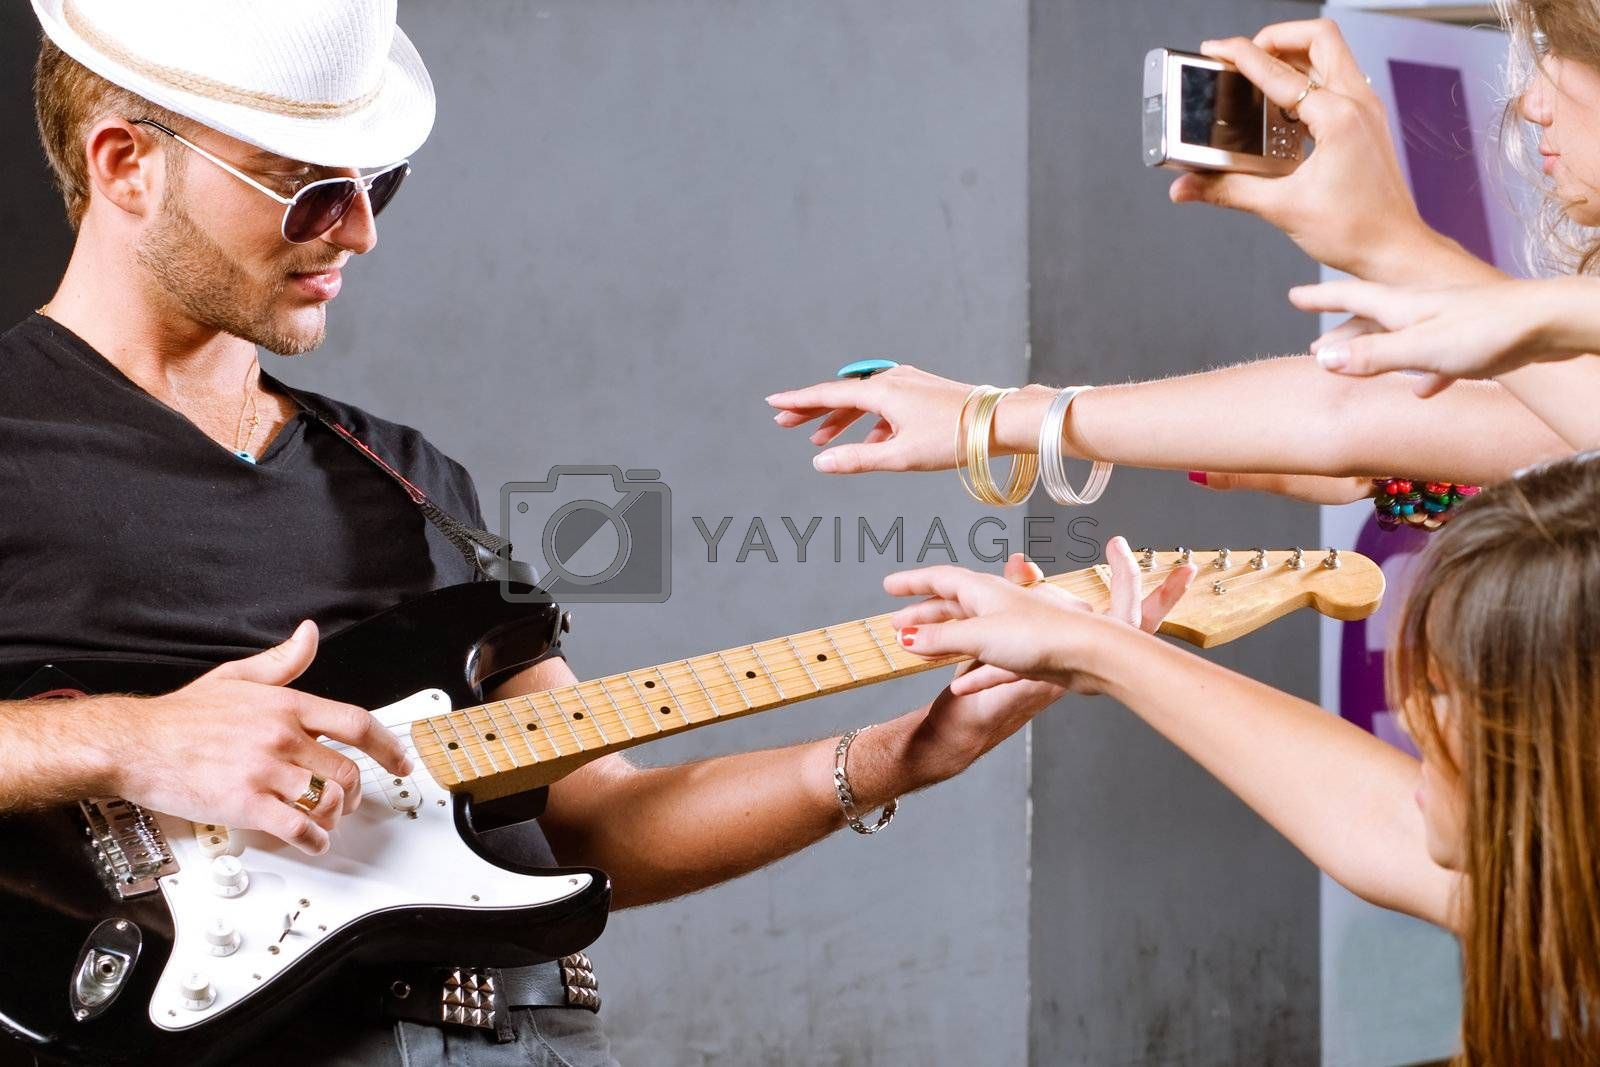 Selective focus on guitar player with fans around.